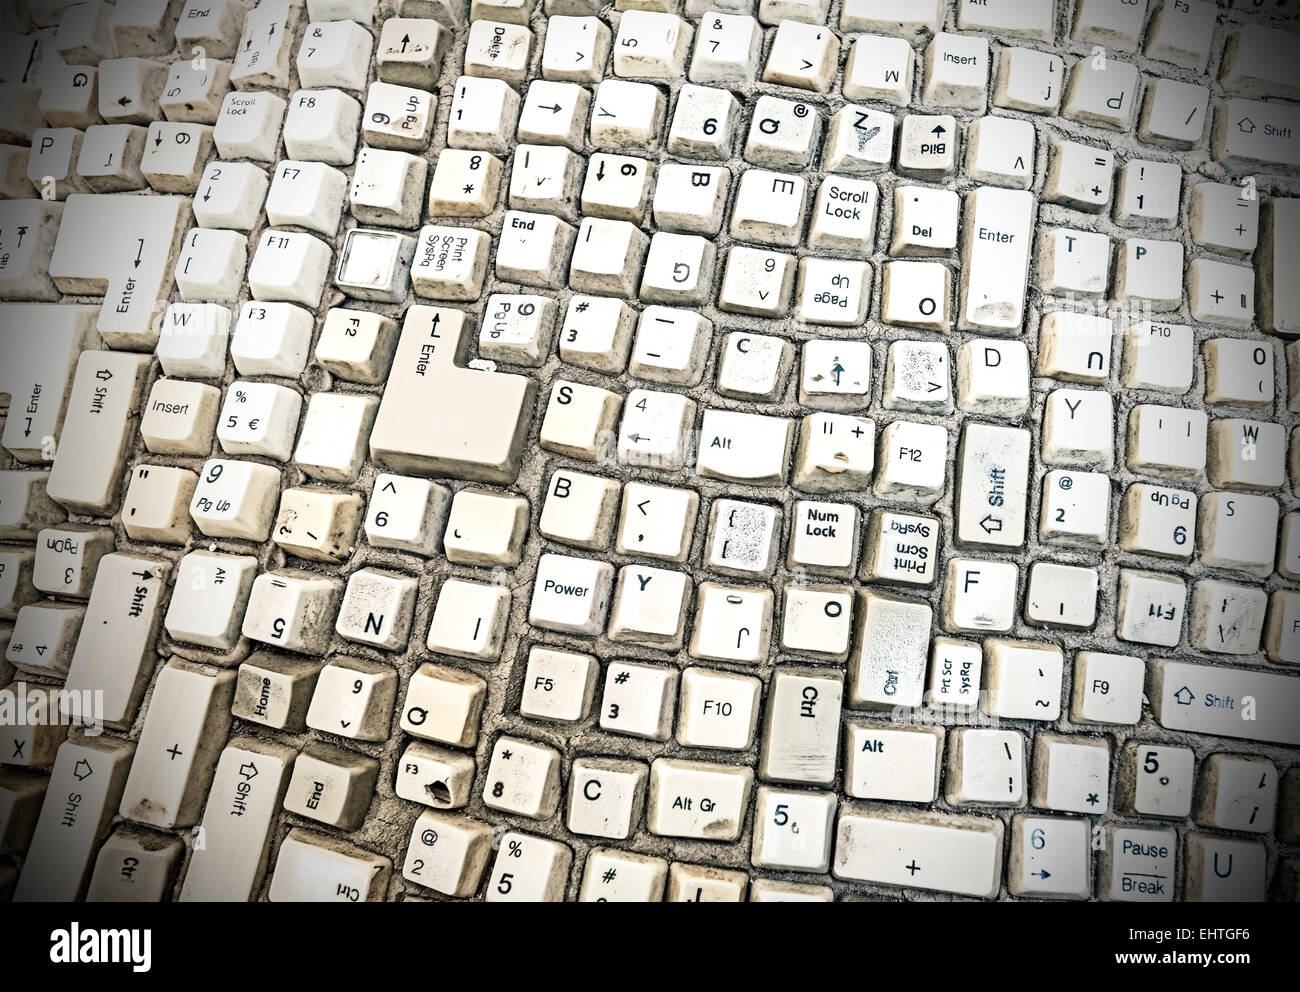 Grungy abstract background made of computer keyboard keys. - Stock Image